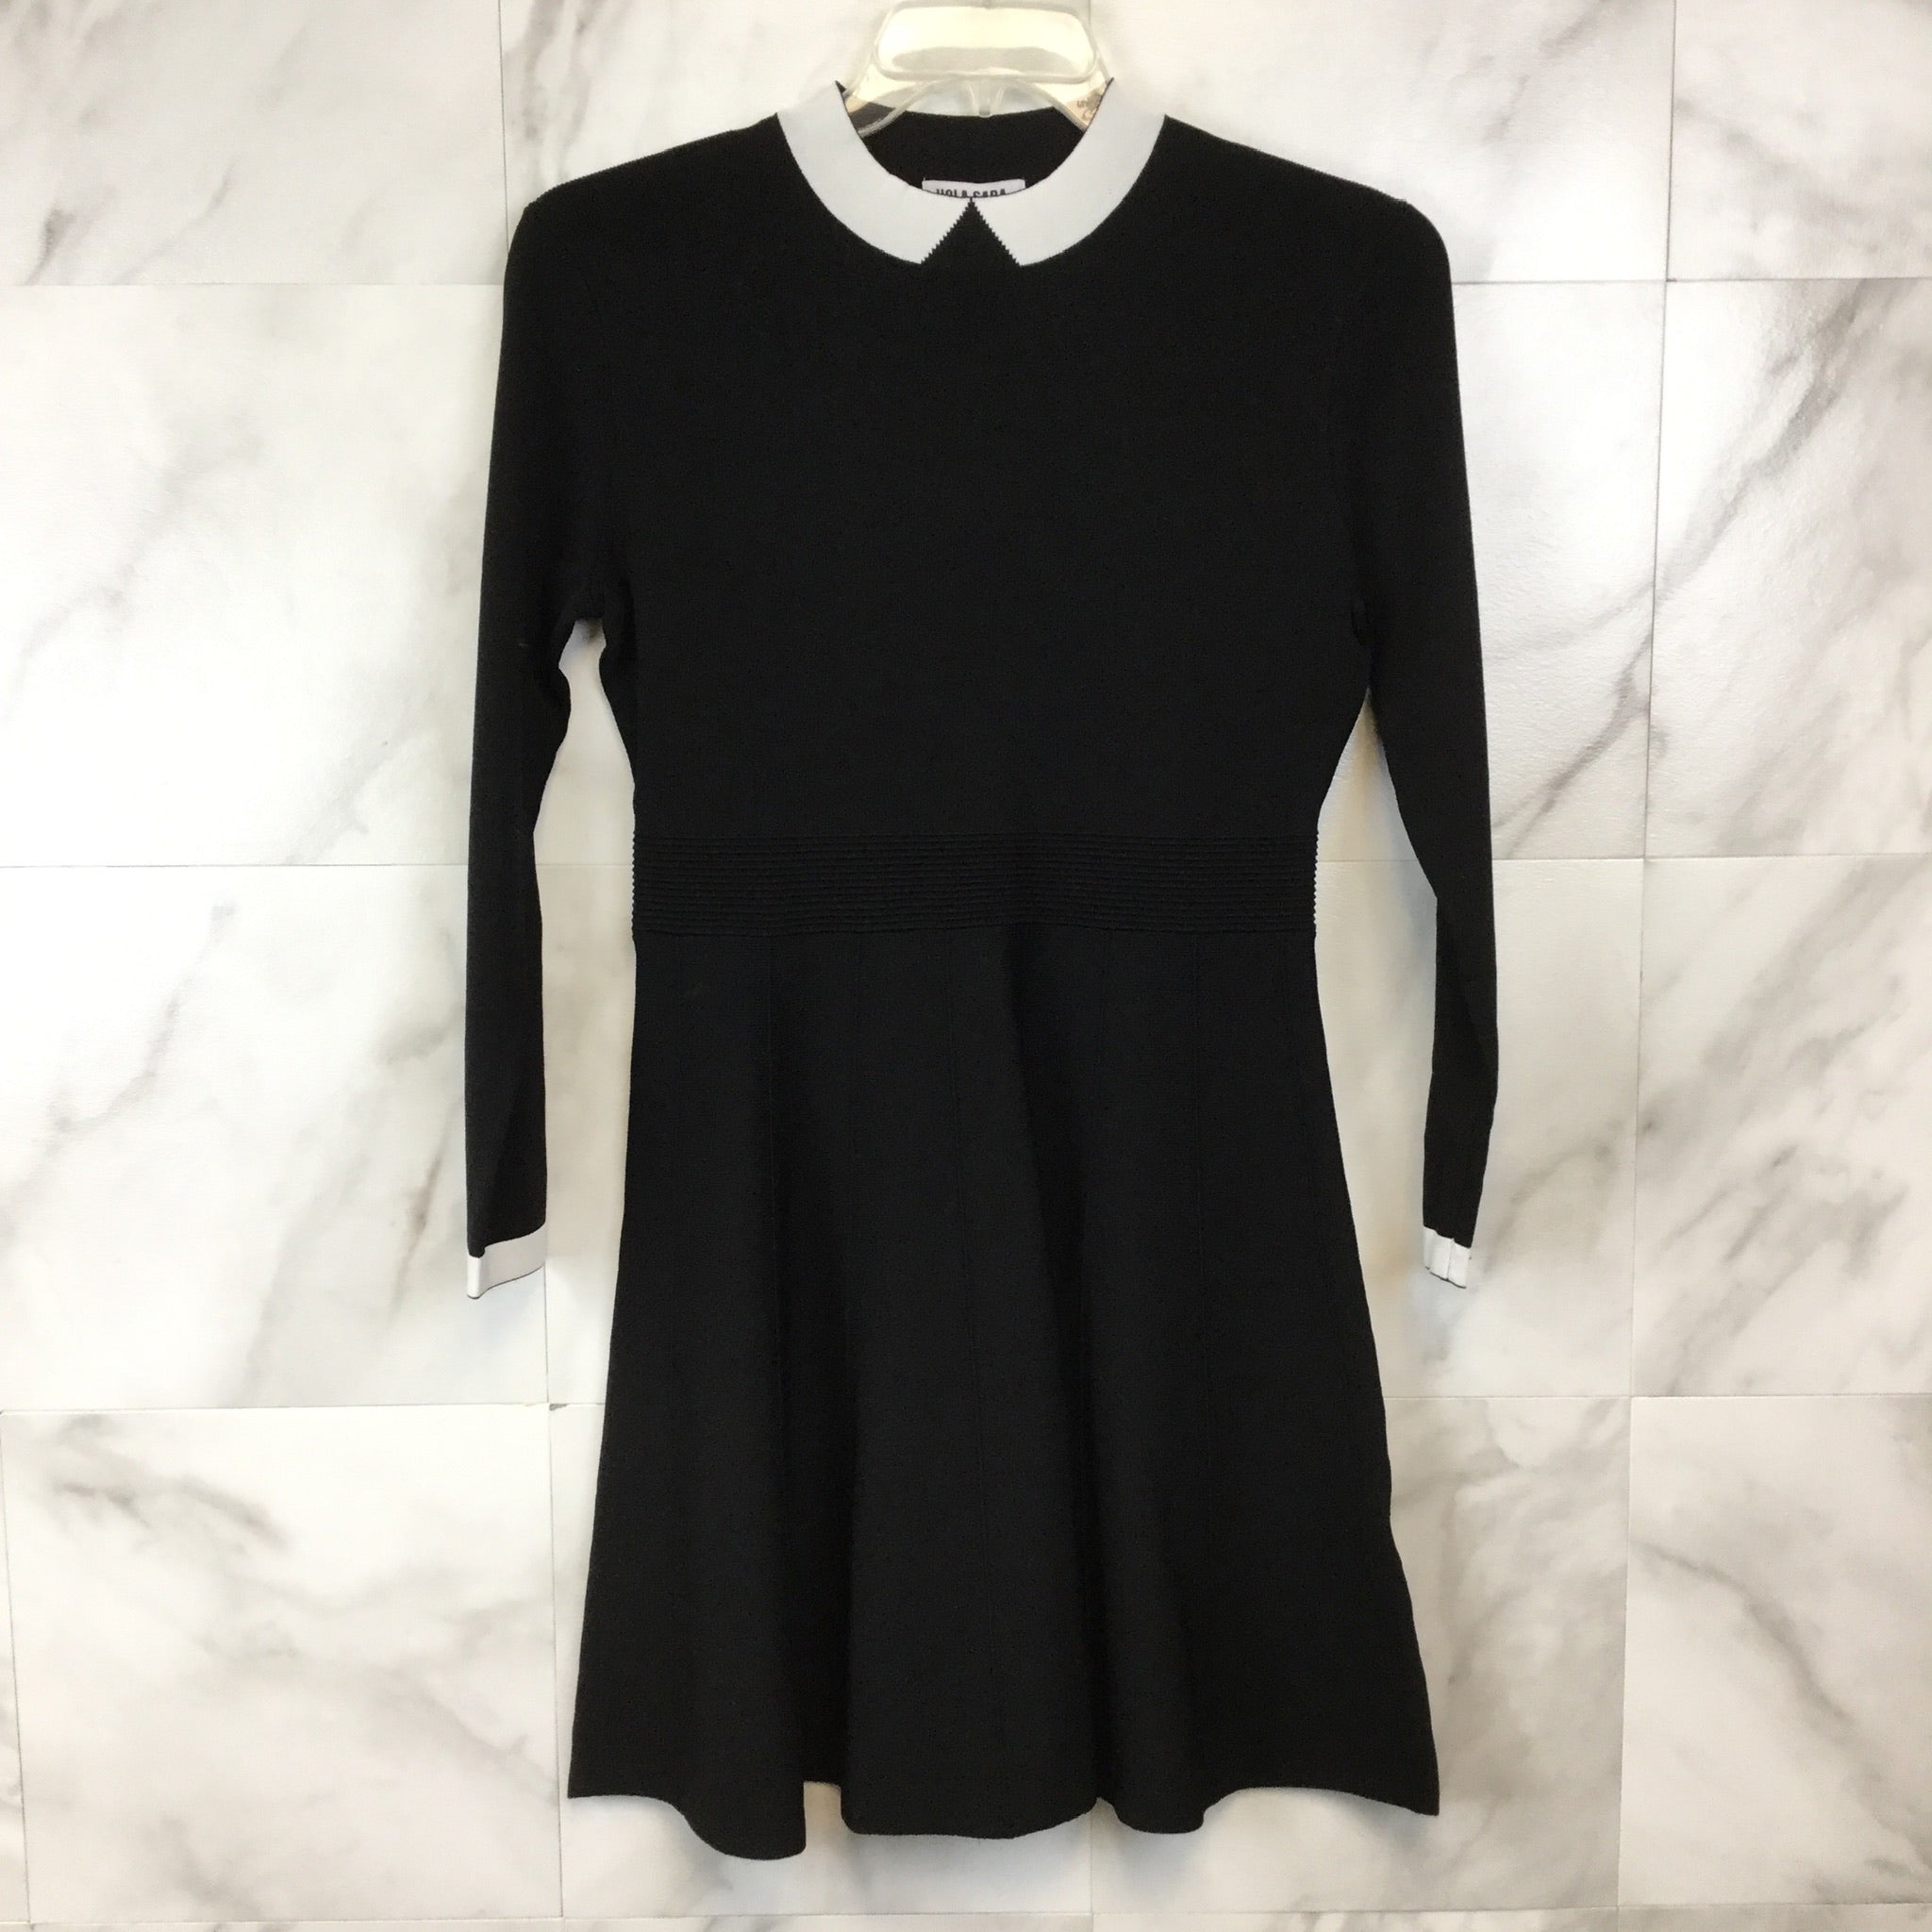 Hola Sara Knit Dress - size M